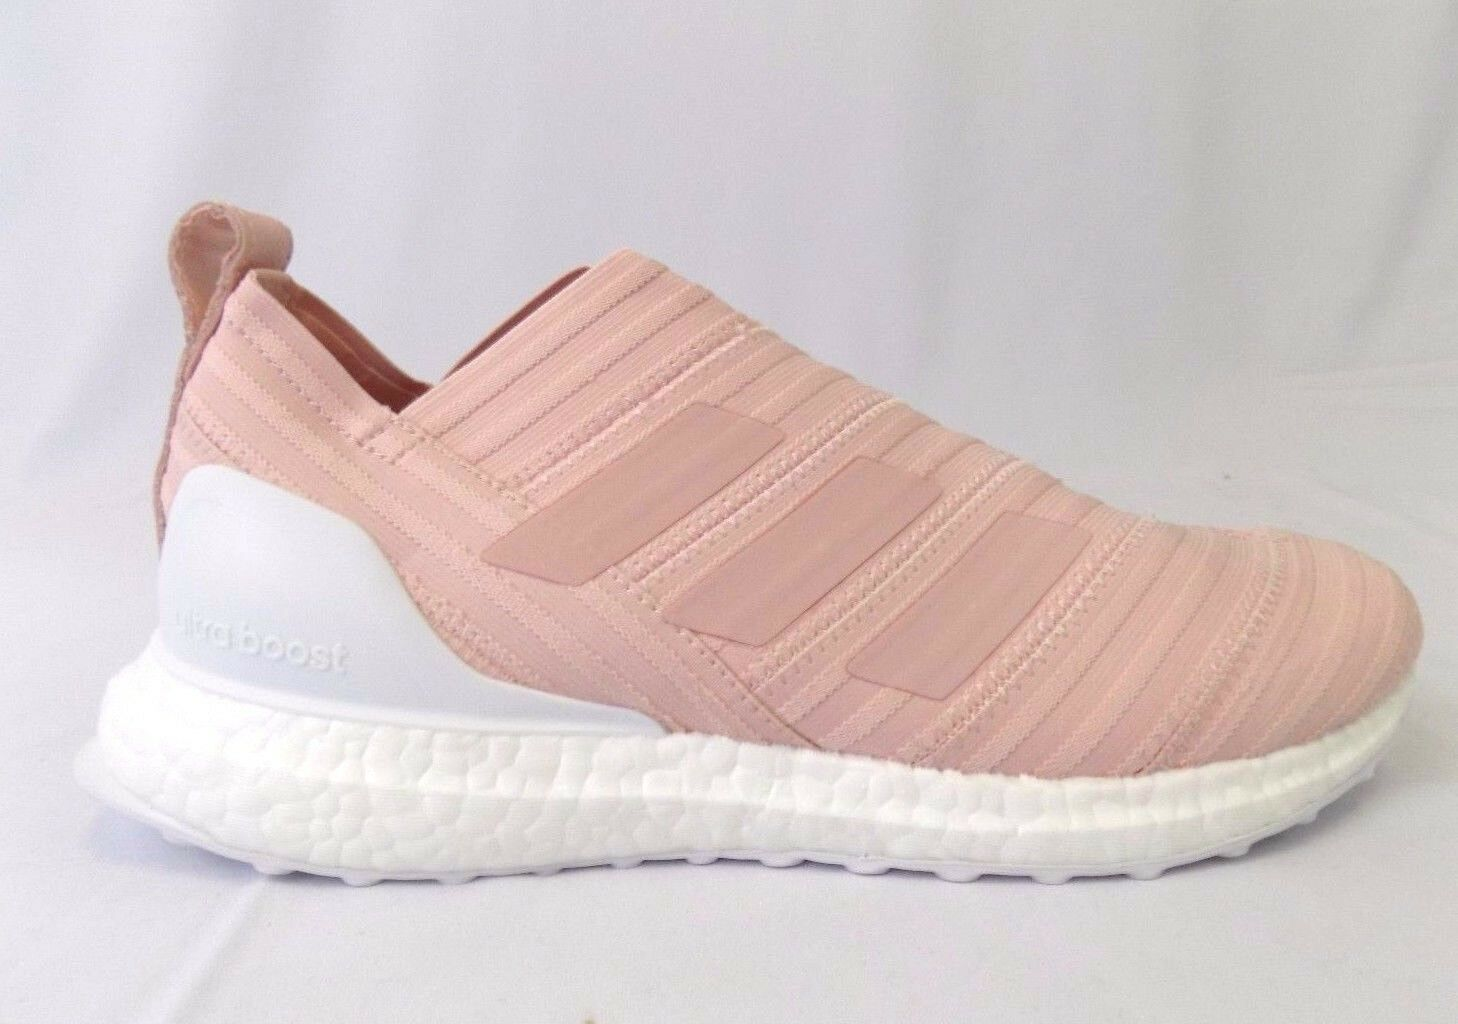 NEW MEN'S ADIDAS KITH NEMEZIZ 17 ULTRABOOST FLAMINGO PINK SOCCER SHOES SNEAKERS